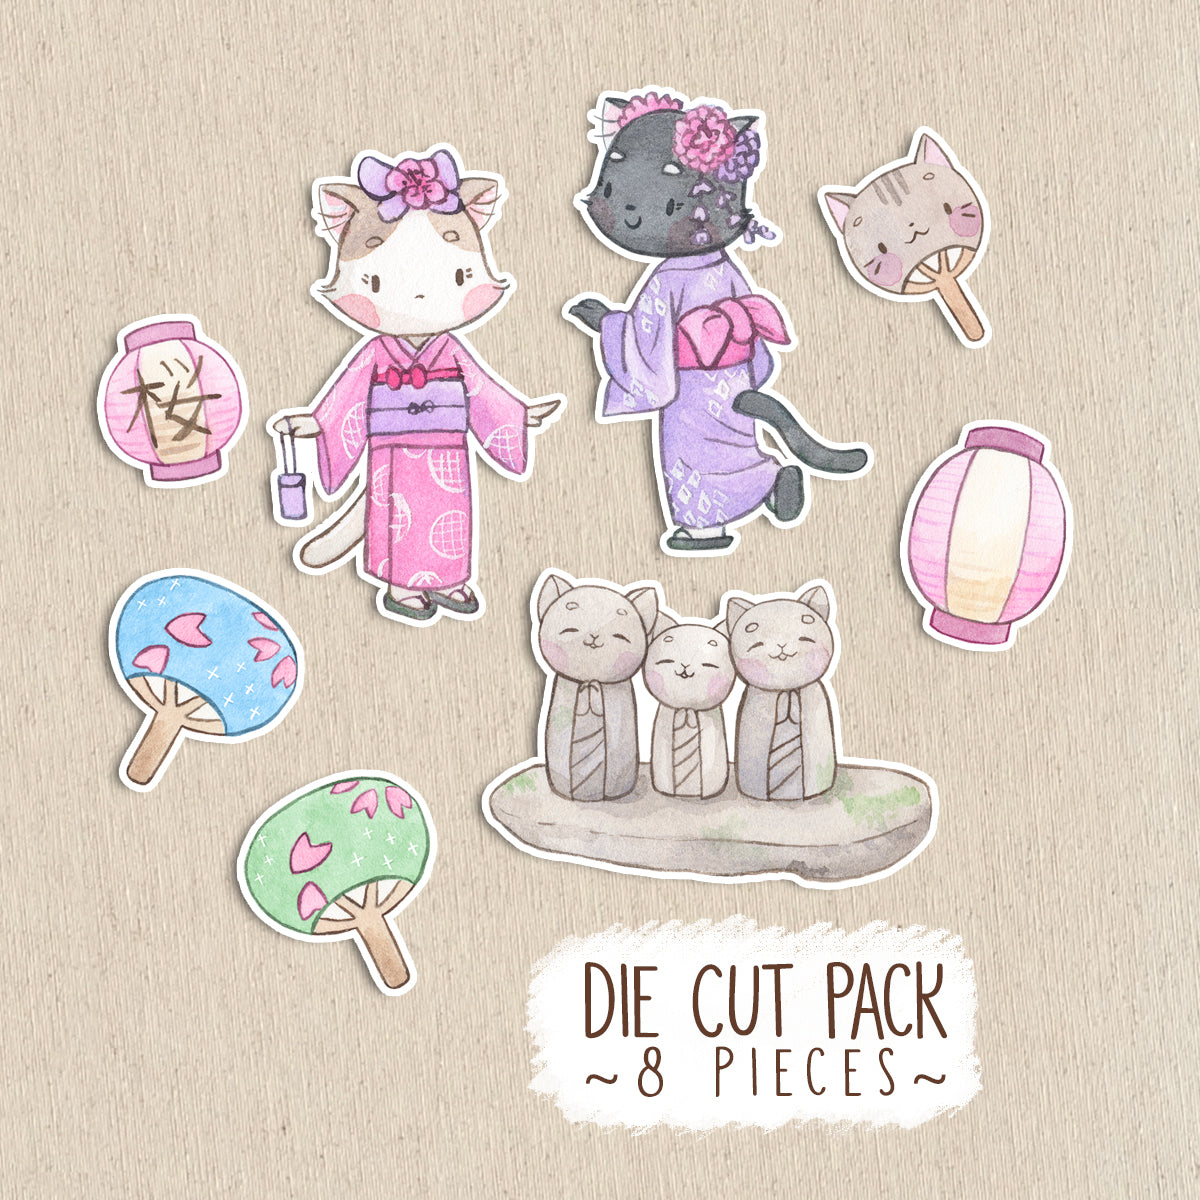 Die Cut Pack 8 pieces Cardboard or Sticker ~ Hanami Cats